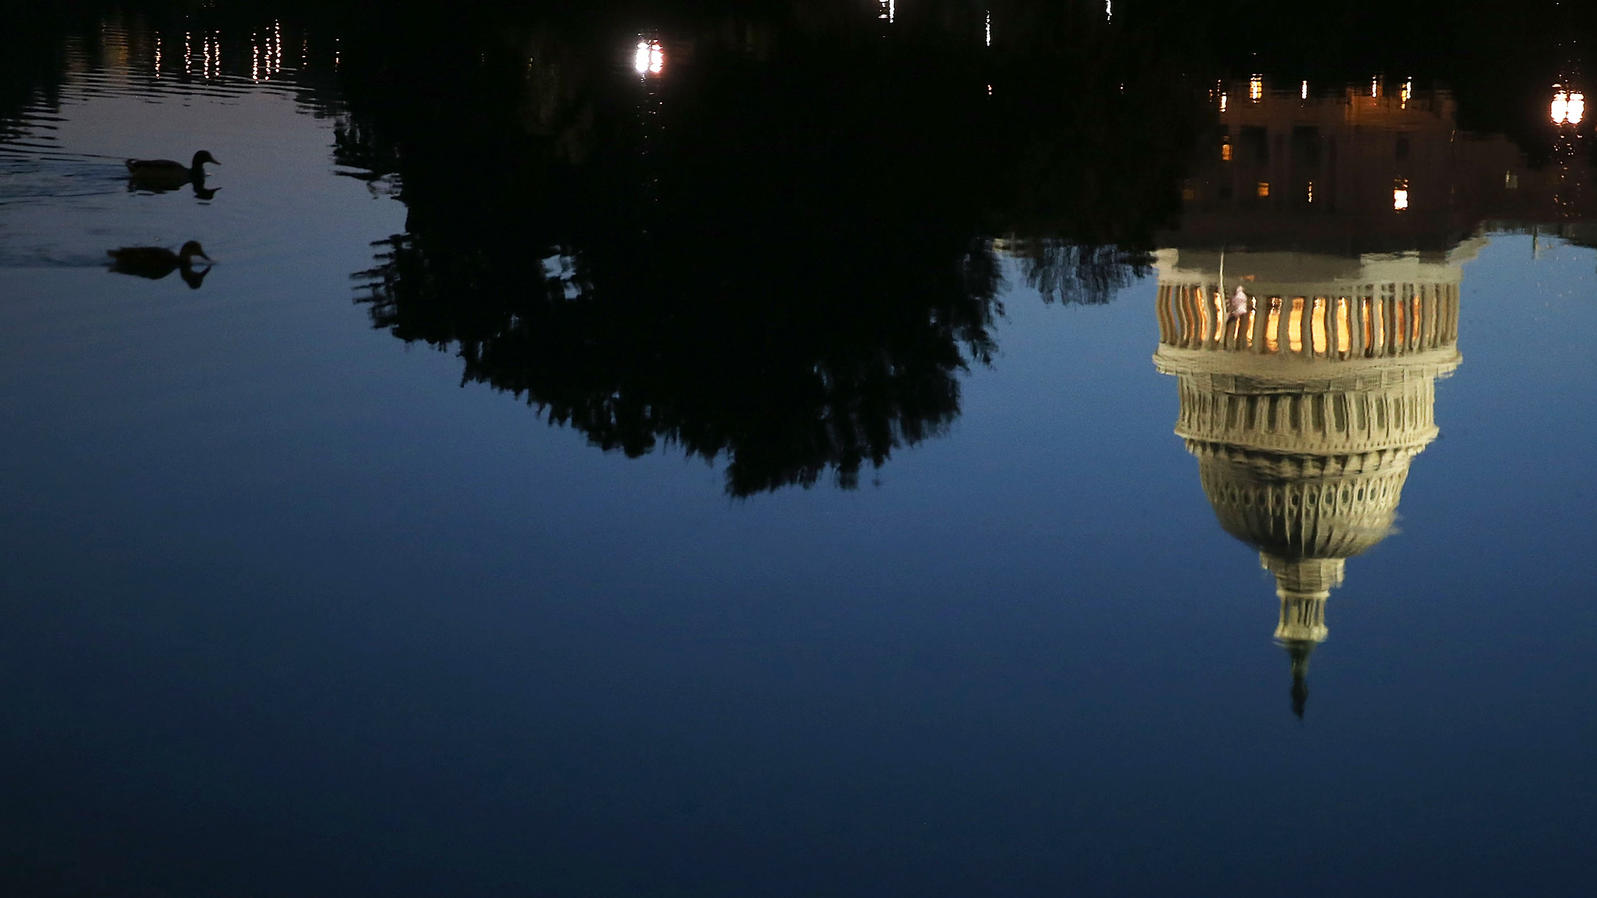 The Capitol Building, reflected in the water. Two Mallards swim nearby. Mark Wilson/Getty Images